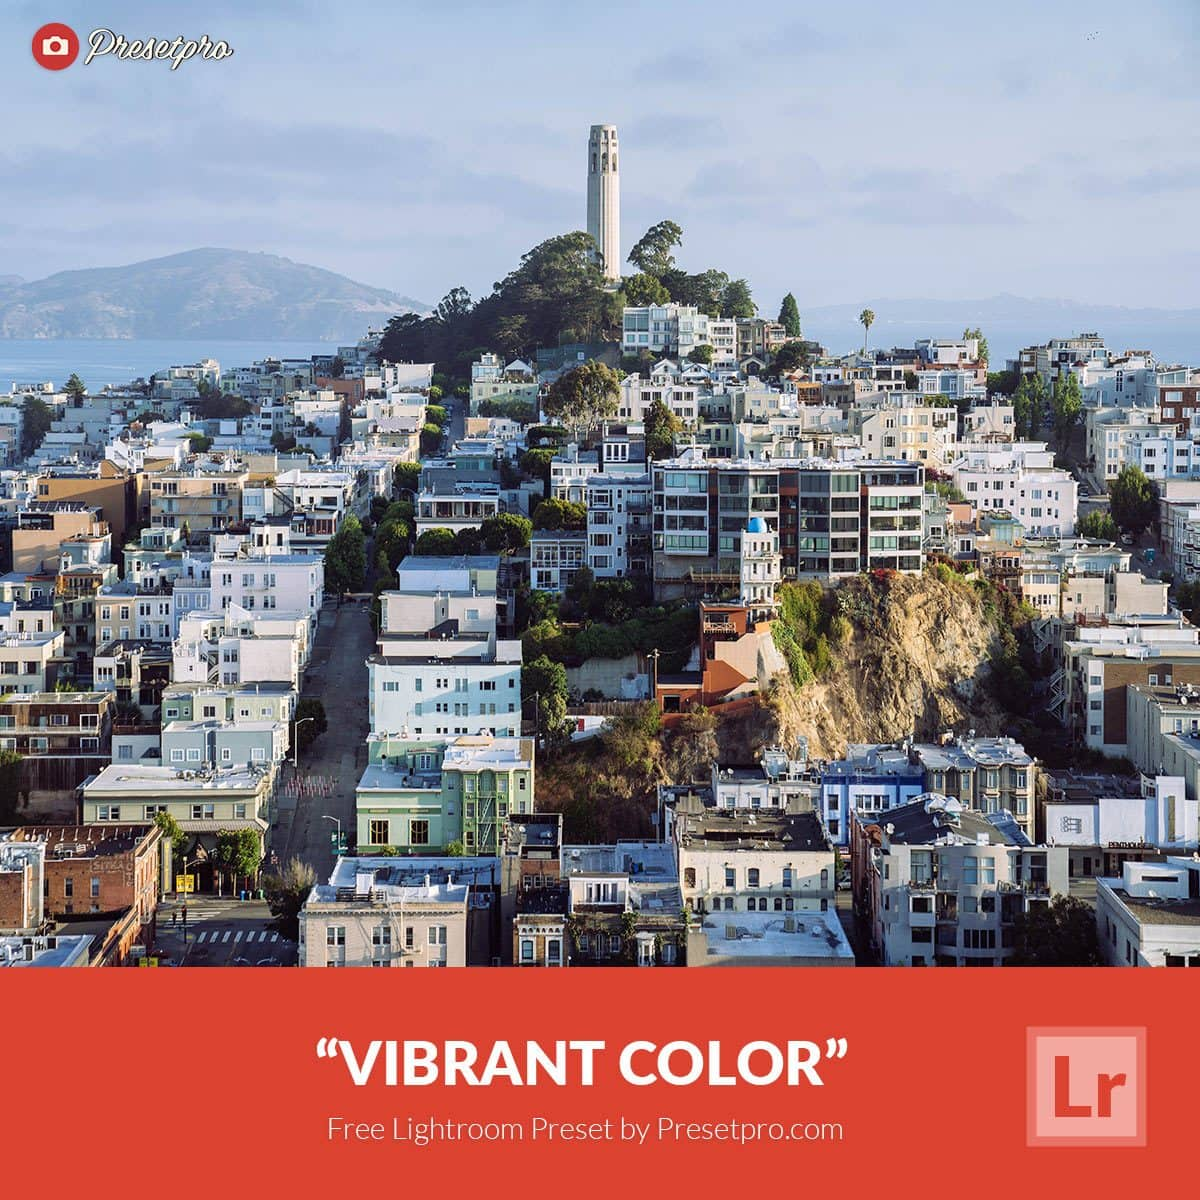 Free-Lightroom-Preset-Vibrant-Colors-Presetpro.com